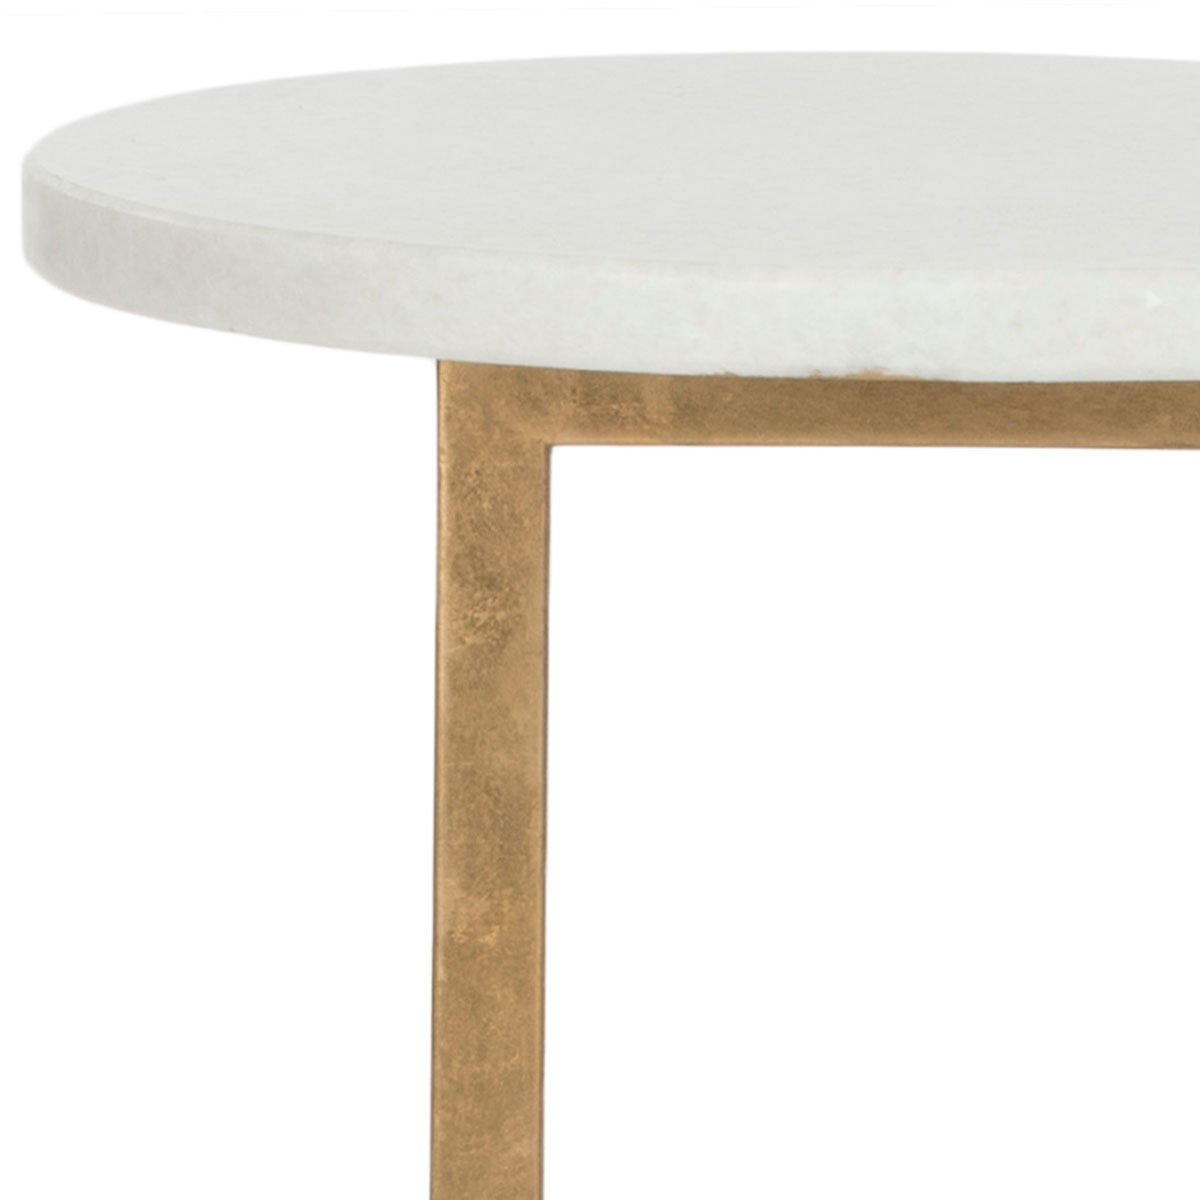 accent tables furniture safavieh detail gold marble table statuesque and stylish the cassidy pays homage modern sculpture crafted with leafed iron base white tabletop outdoor top